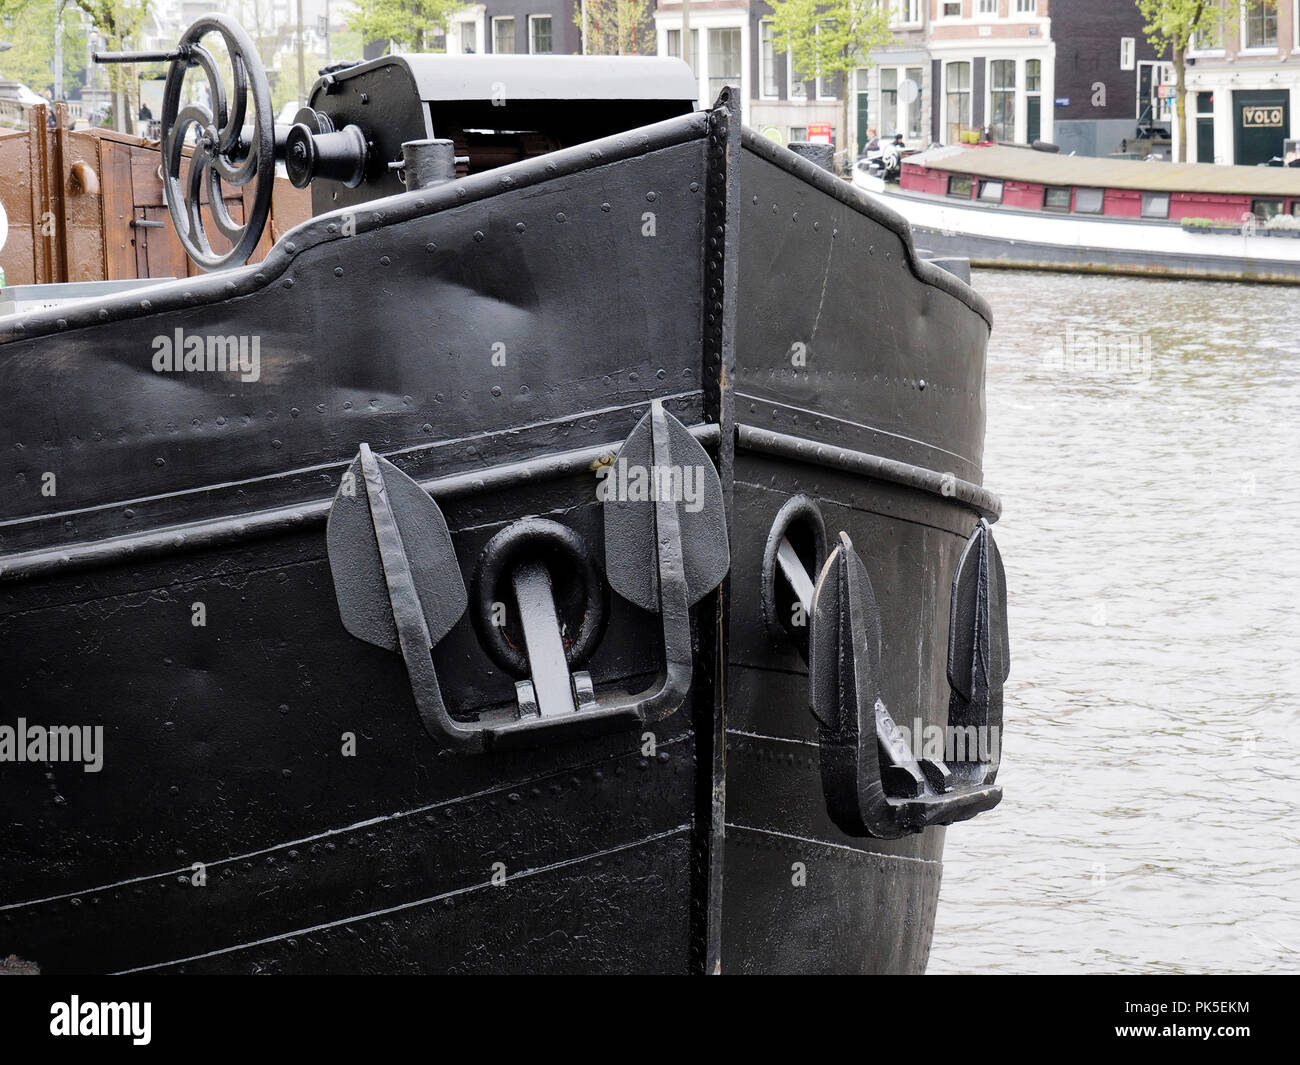 Bow of a traditional steel hulled Dutch barge with twin anchors moored on an Amsterdam canal. Stock Photo